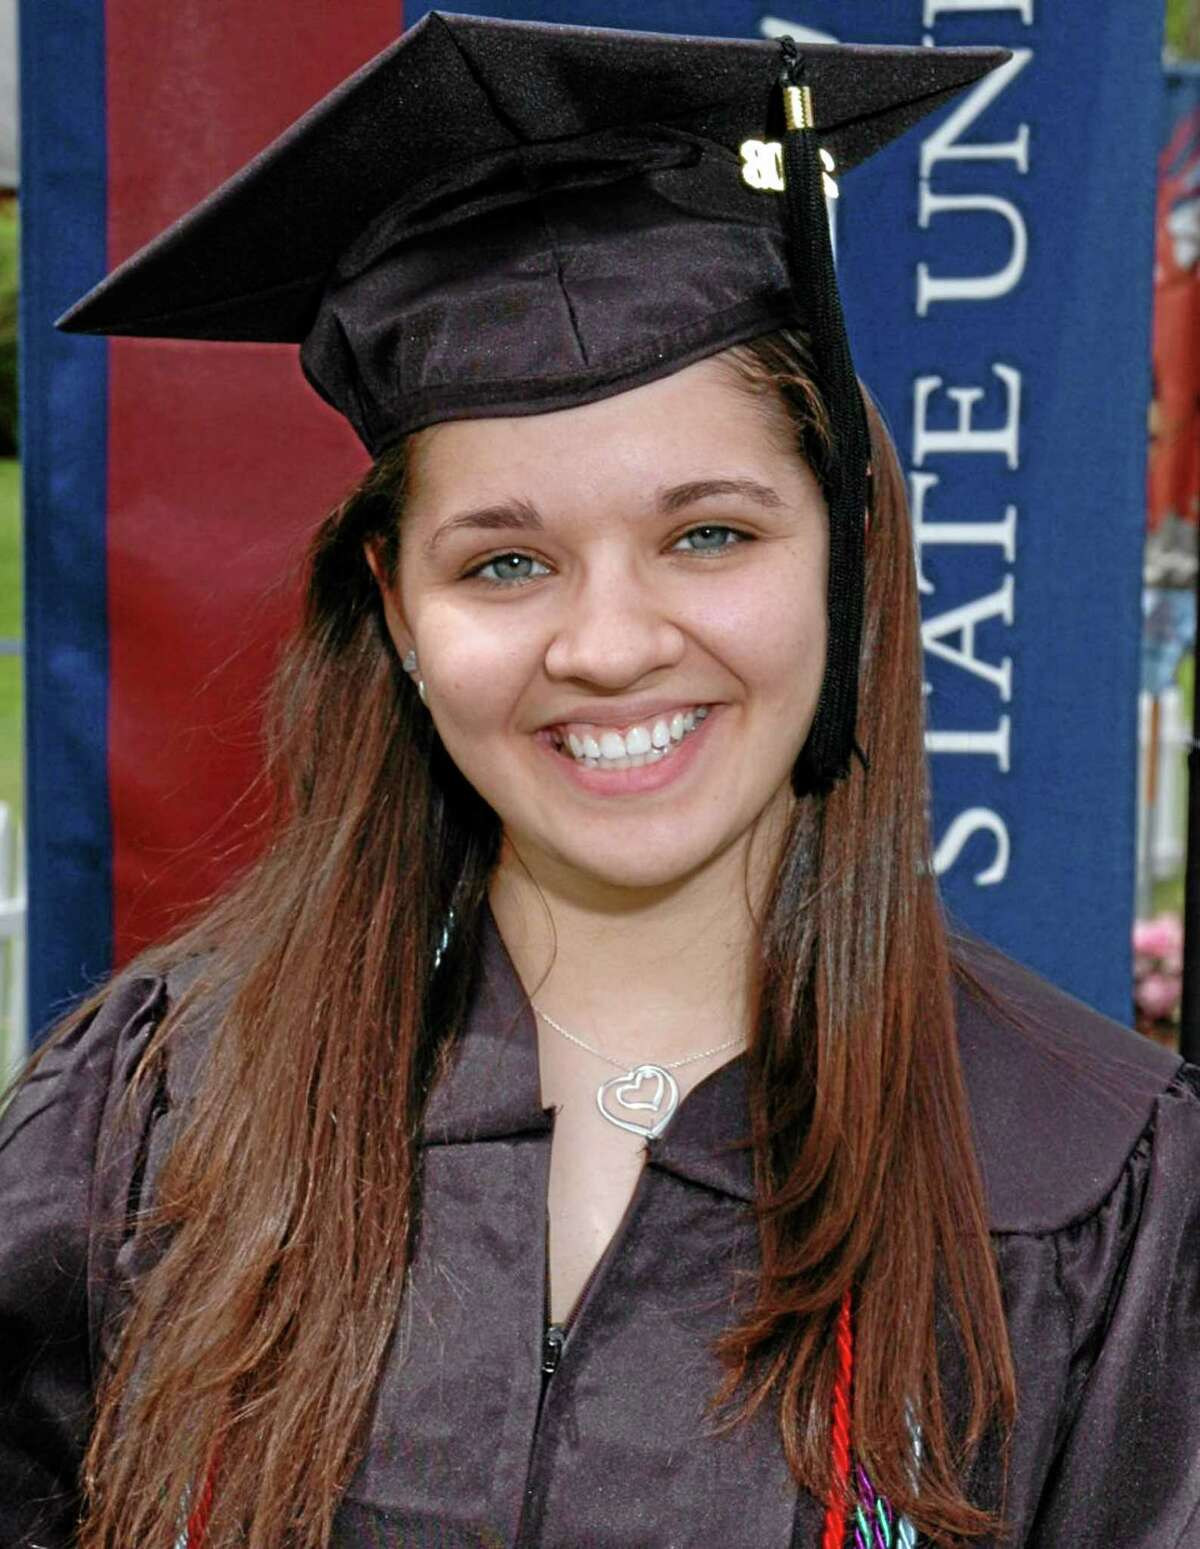 FILE - This undated file photo provided to The Associated Press by Eastern Connecticut University shows Sandy Hook Elementary School teacher Victoria Soto. (AP Photo/Eastern Connecticut University, File)